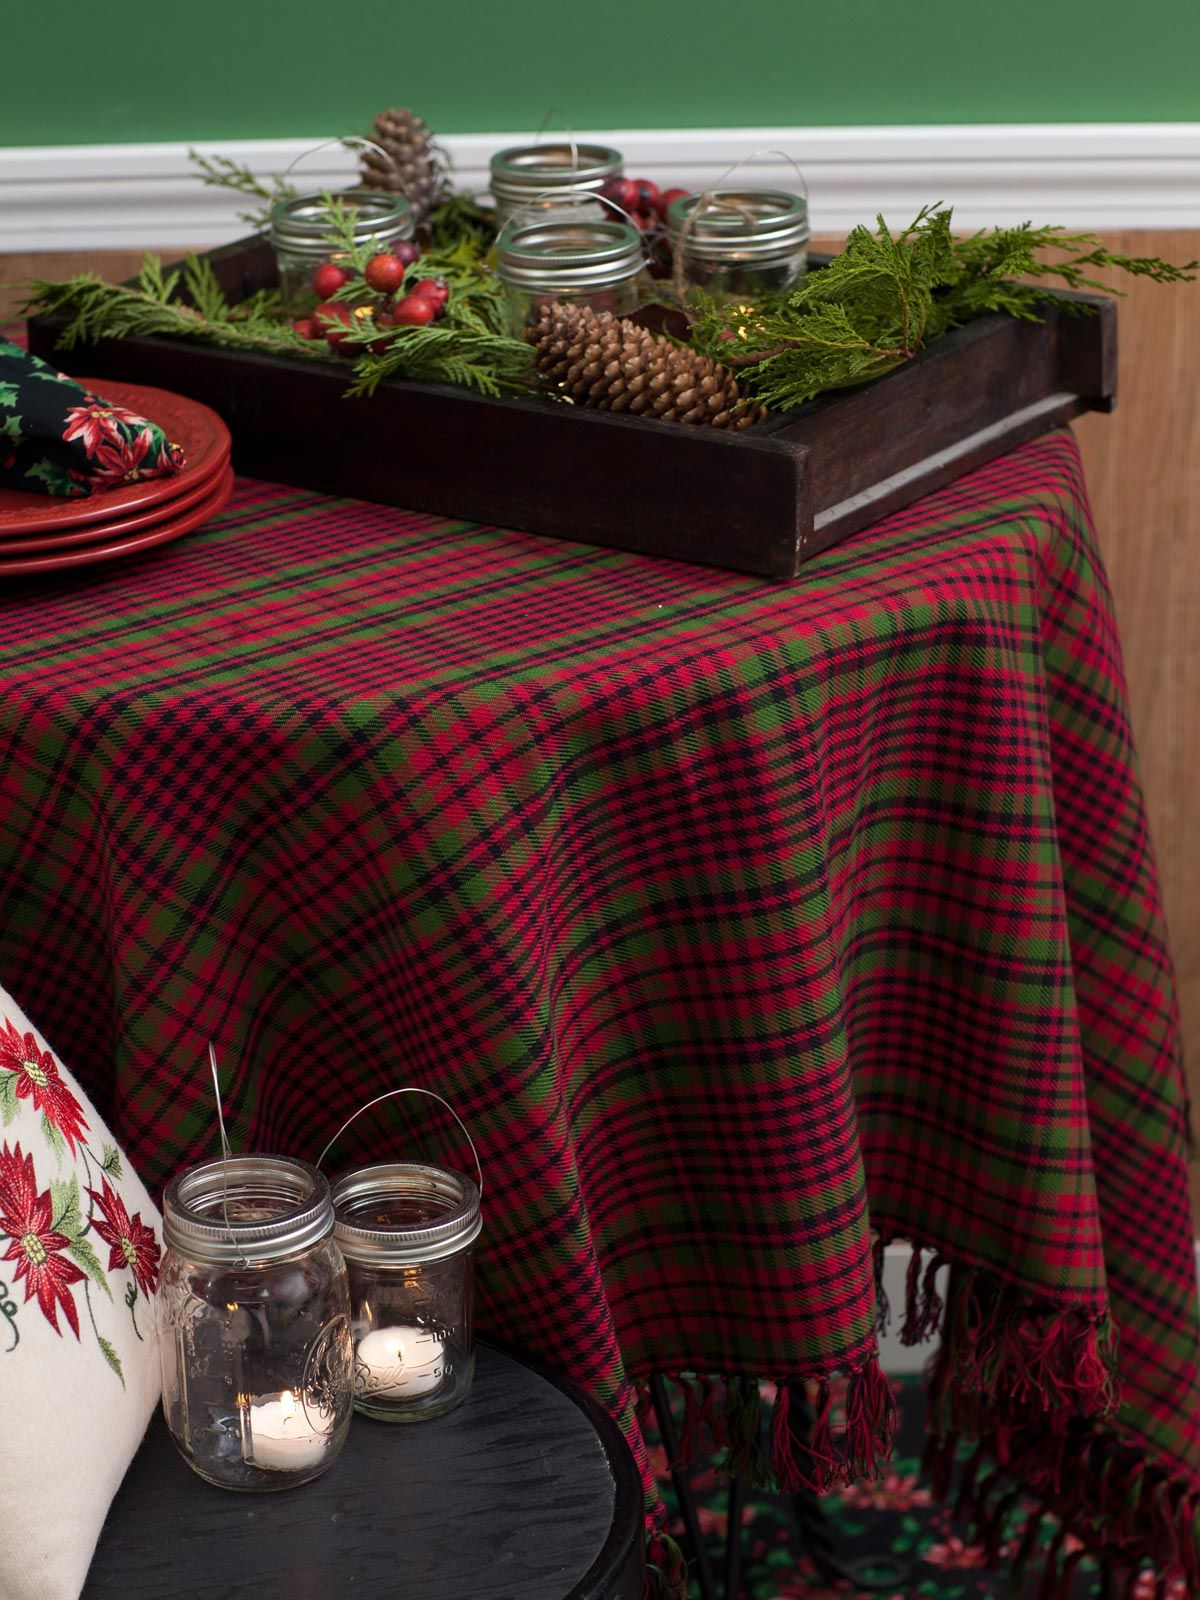 Tartan plaid tablecloth table linens kitchen tablecloths fabulous new signature april cornell clothing kids wear and linens for a beautiful home kitchen tableclothskitchen workwithnaturefo